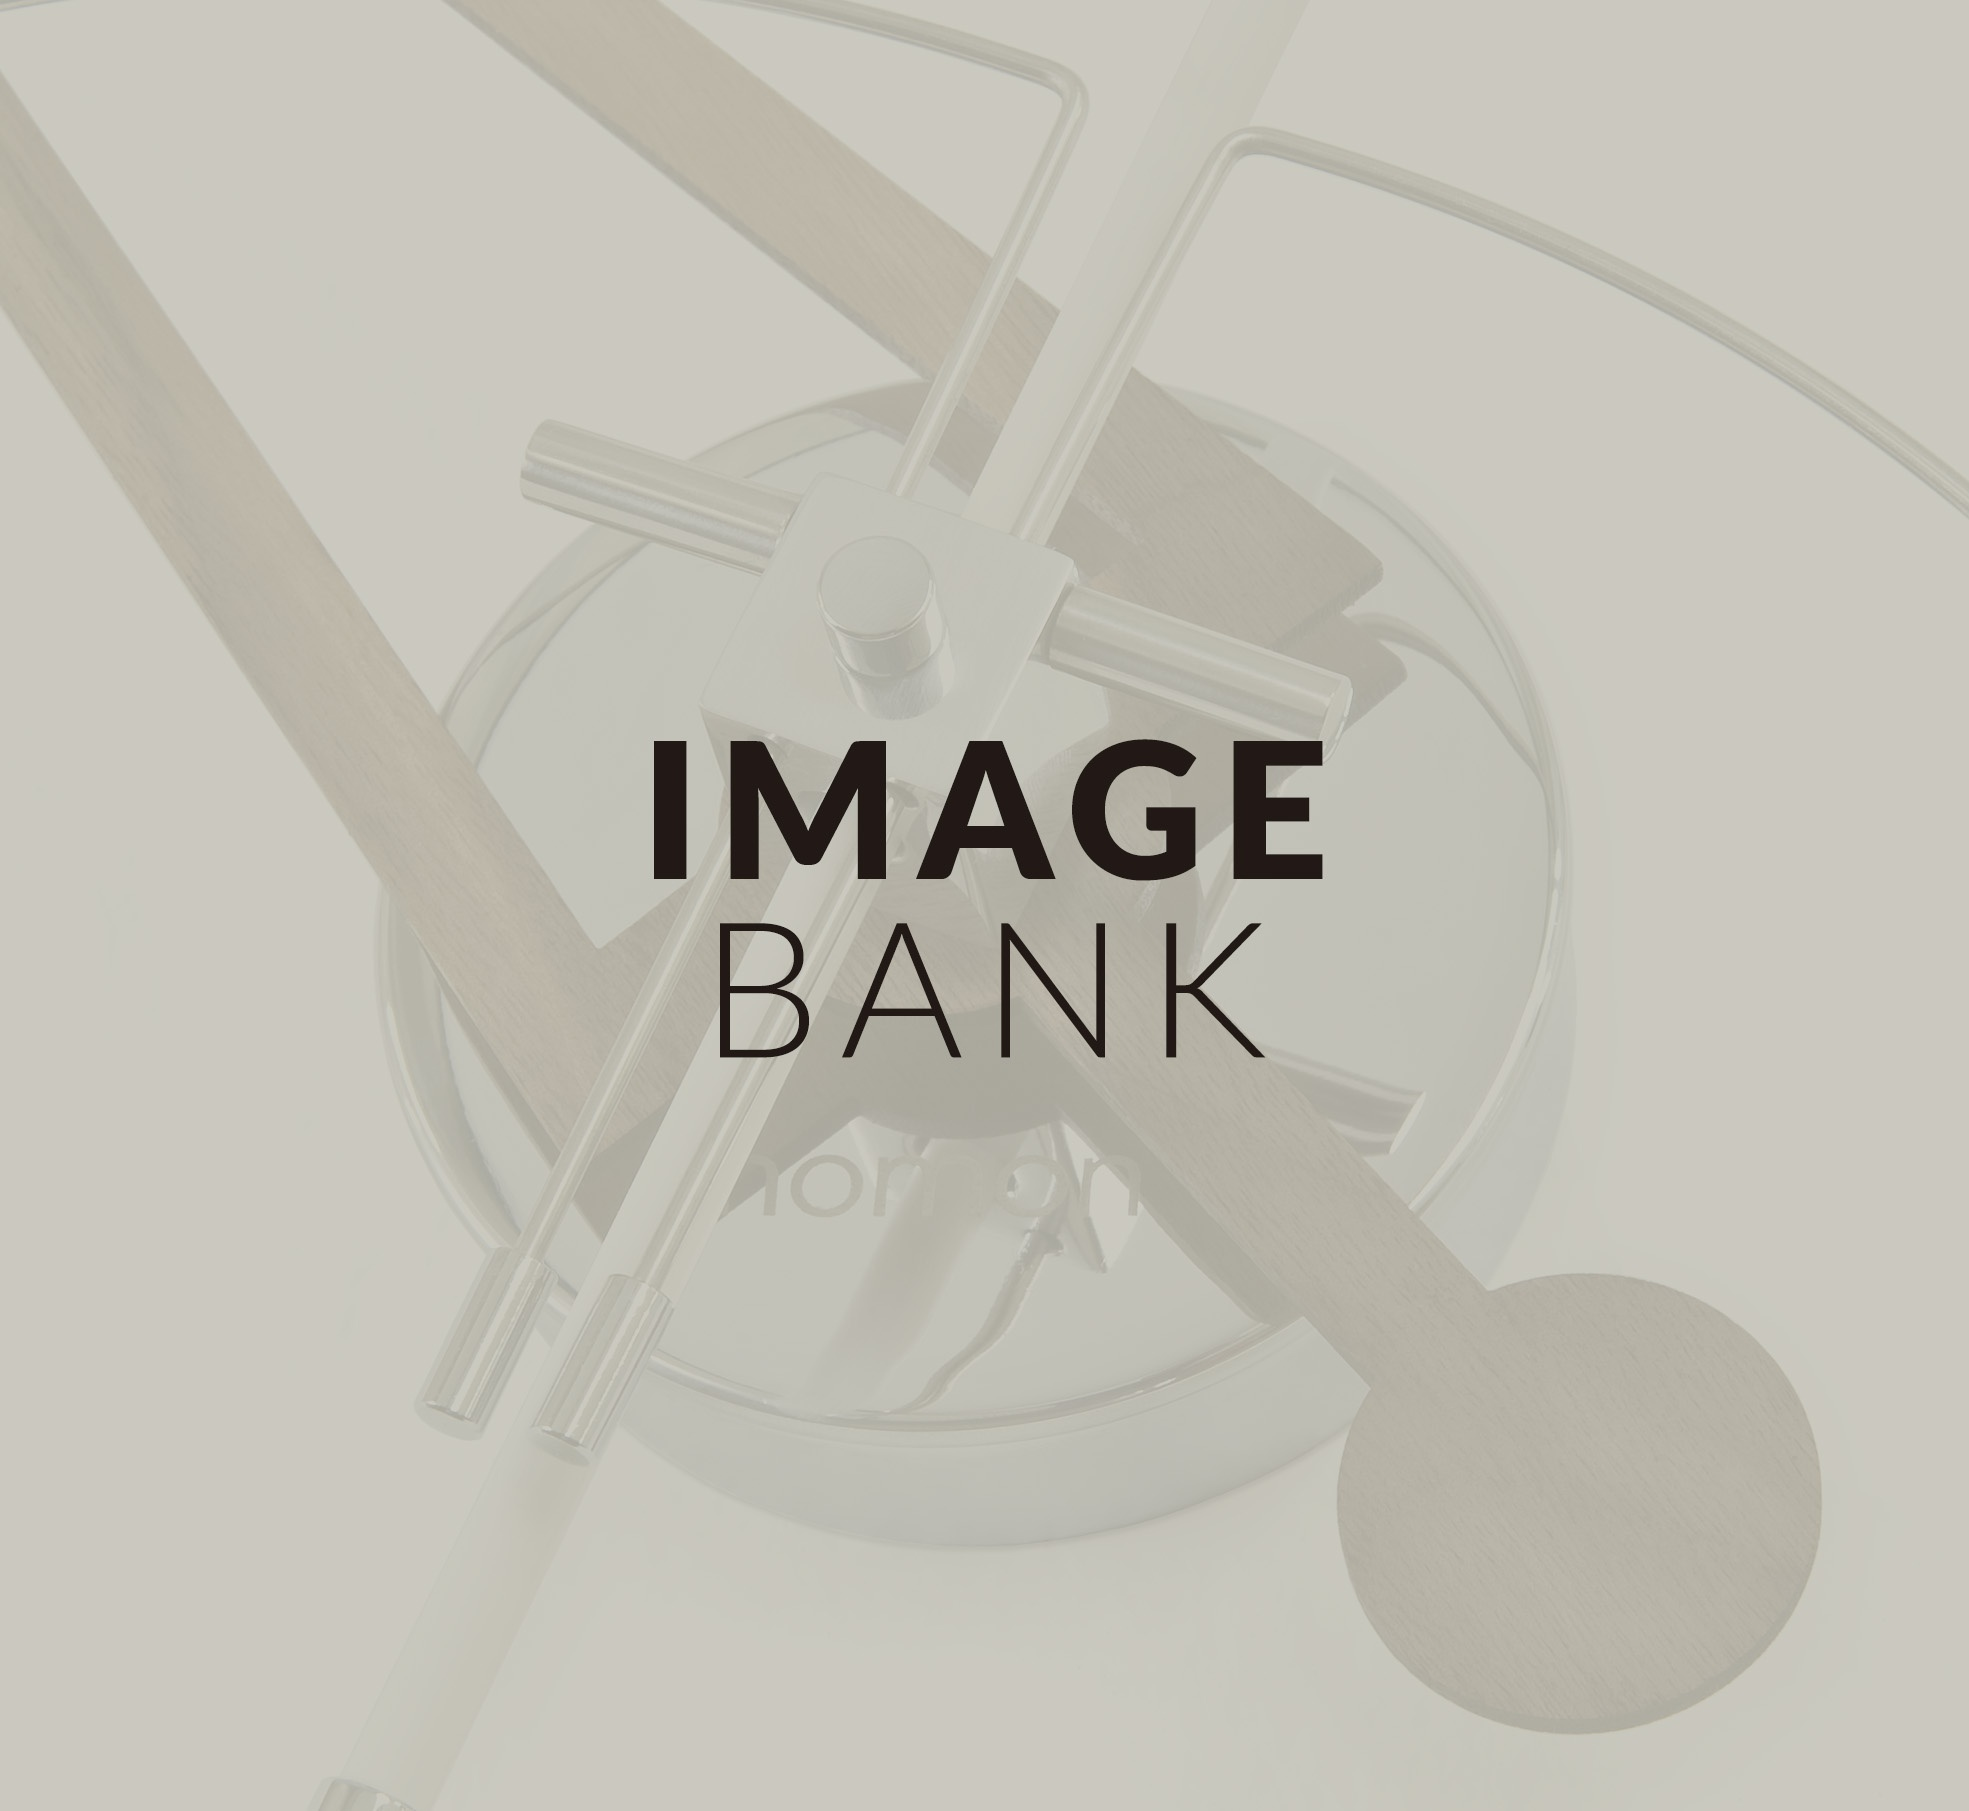 image-bank-nomon-clocks-2020